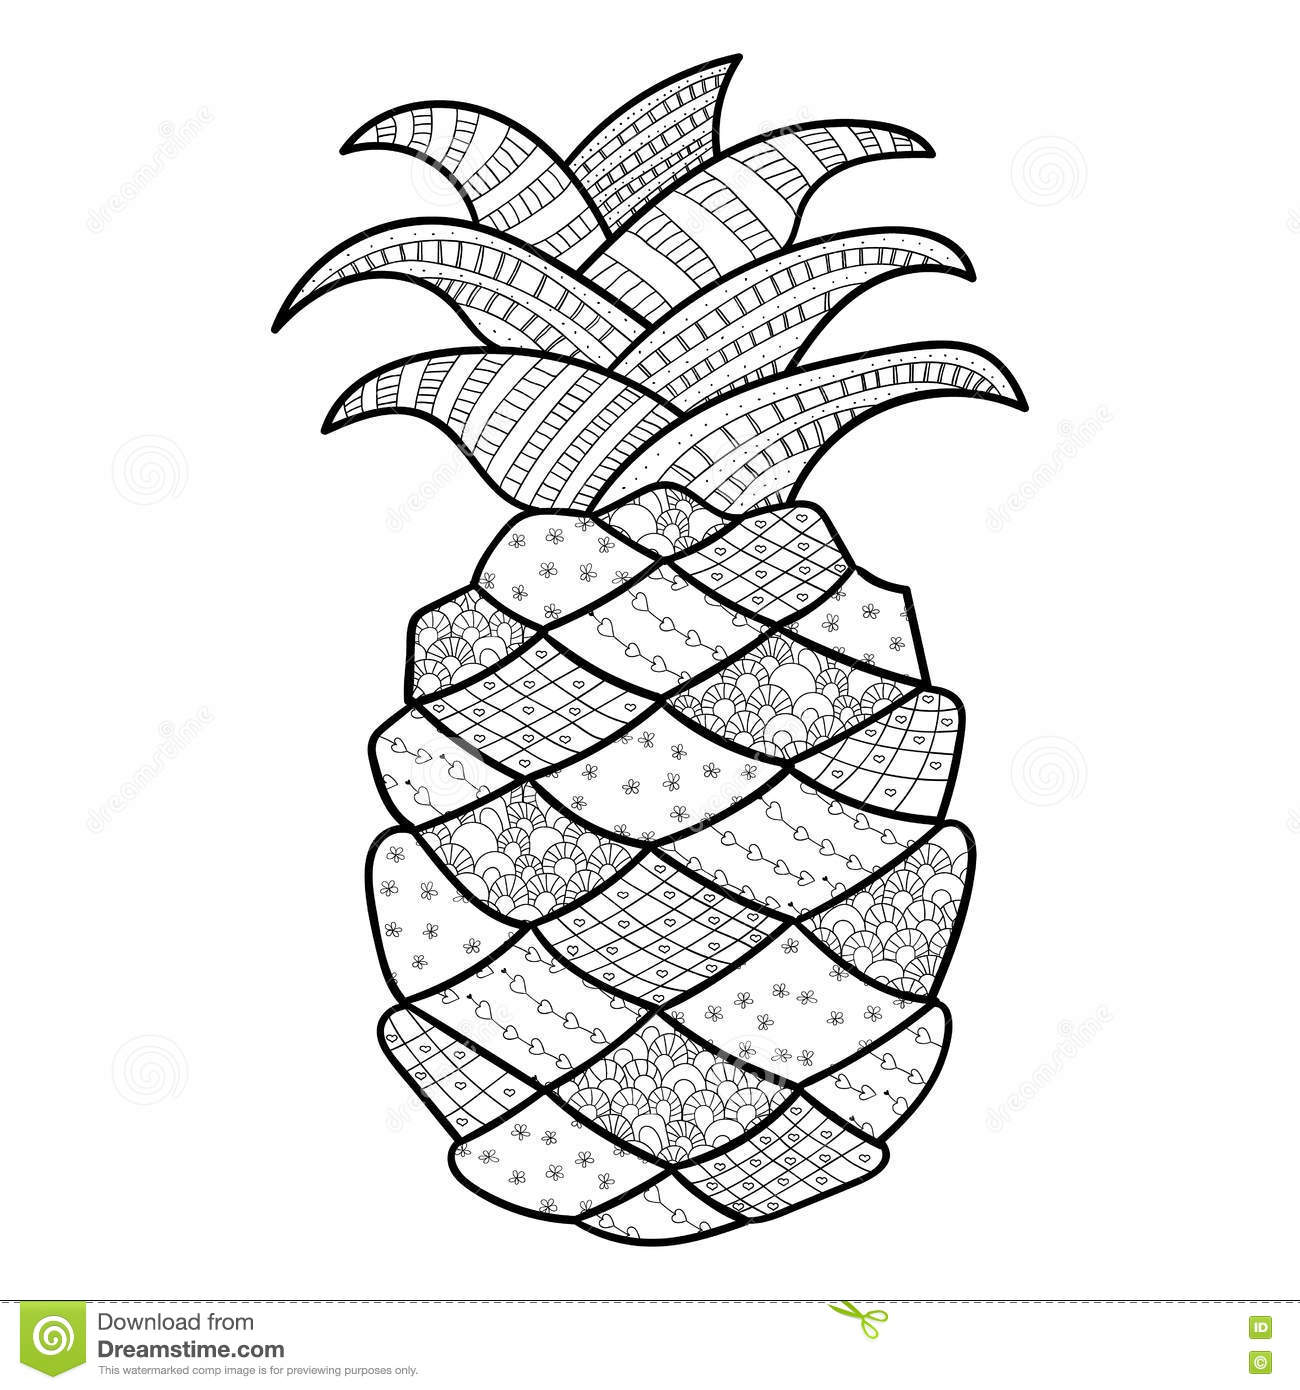 Pineapple Coloring Page Stock Illustrations – 100 Pineapple ... for Clipart Pineapple Black And White  58cpg